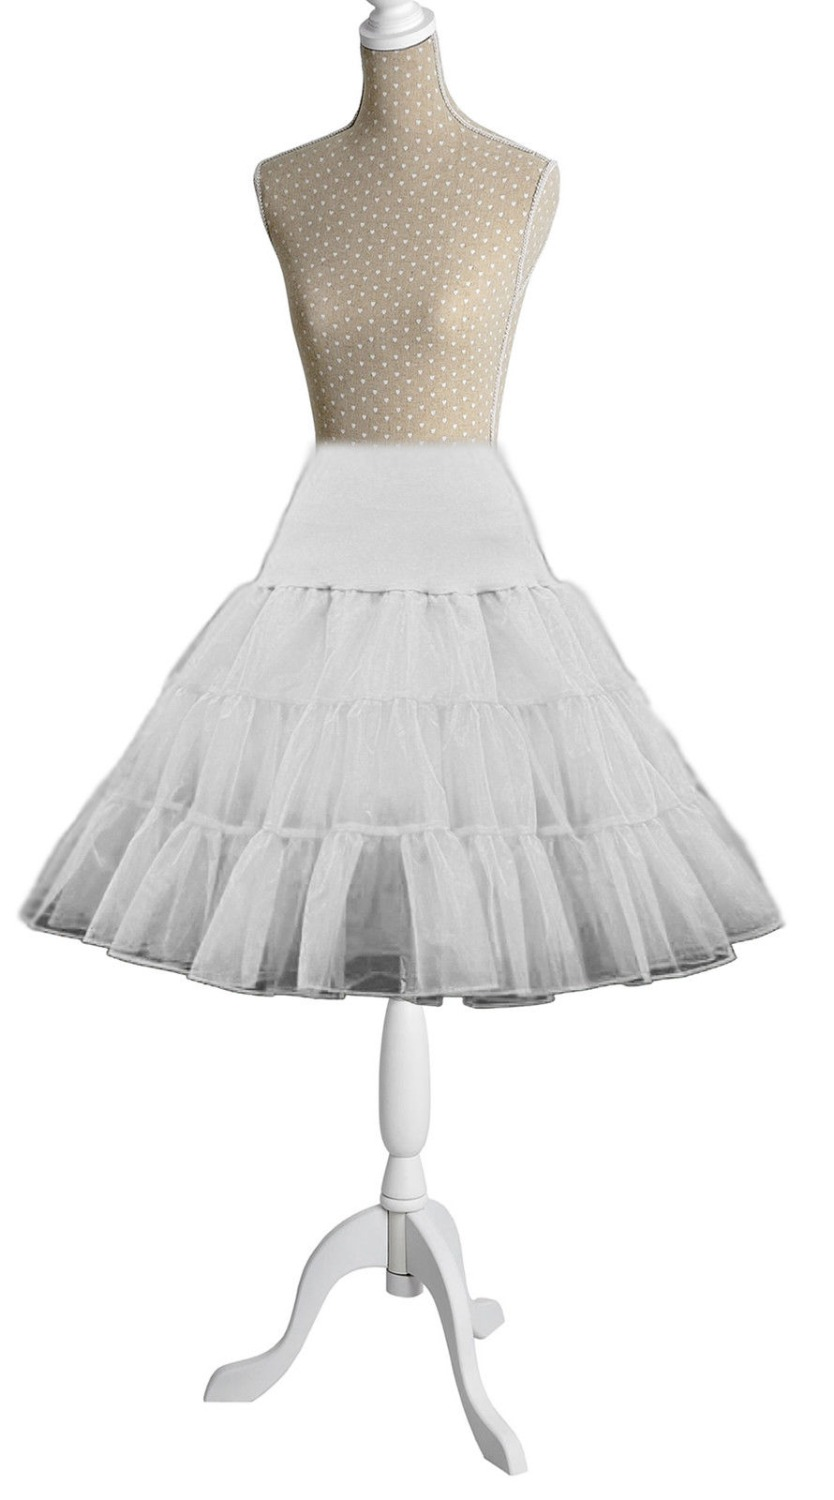 Retro Underskirt Vintage Short Bridal Wedding Dress Petticoat Crinoline Tulle Skirt Rockabilly Tutu Slips Jupon Mariage